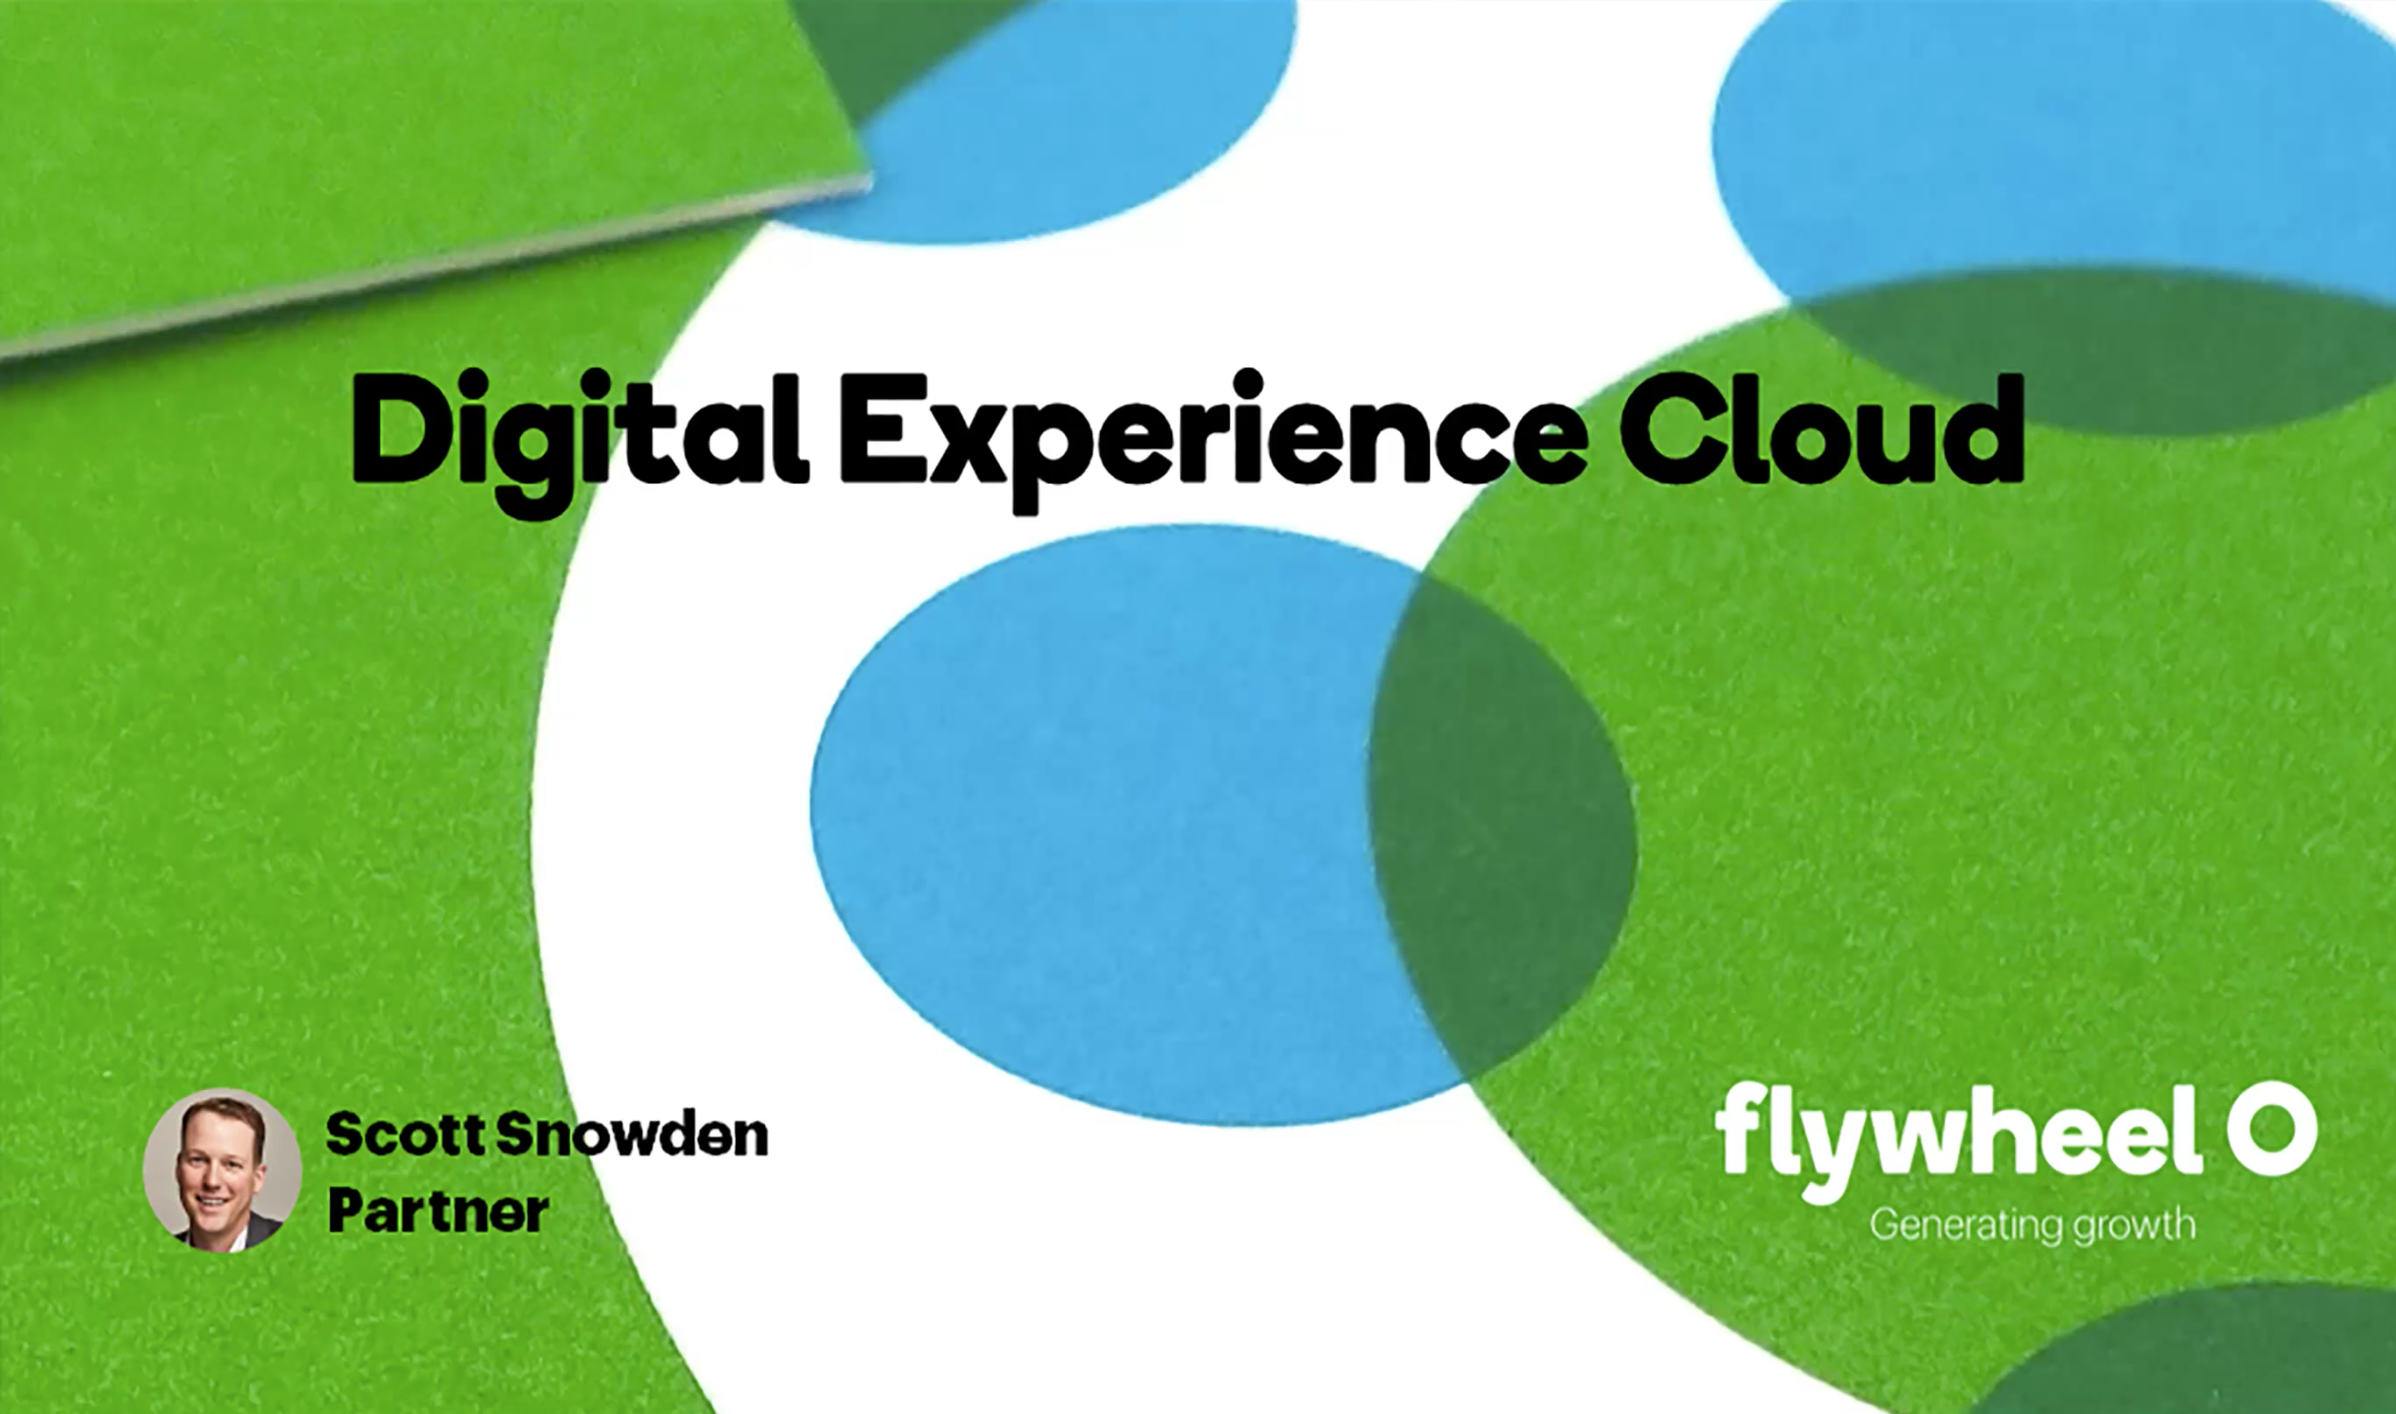 Digital Experience Cloud Walkthrough - Video by Flywheel Strategic